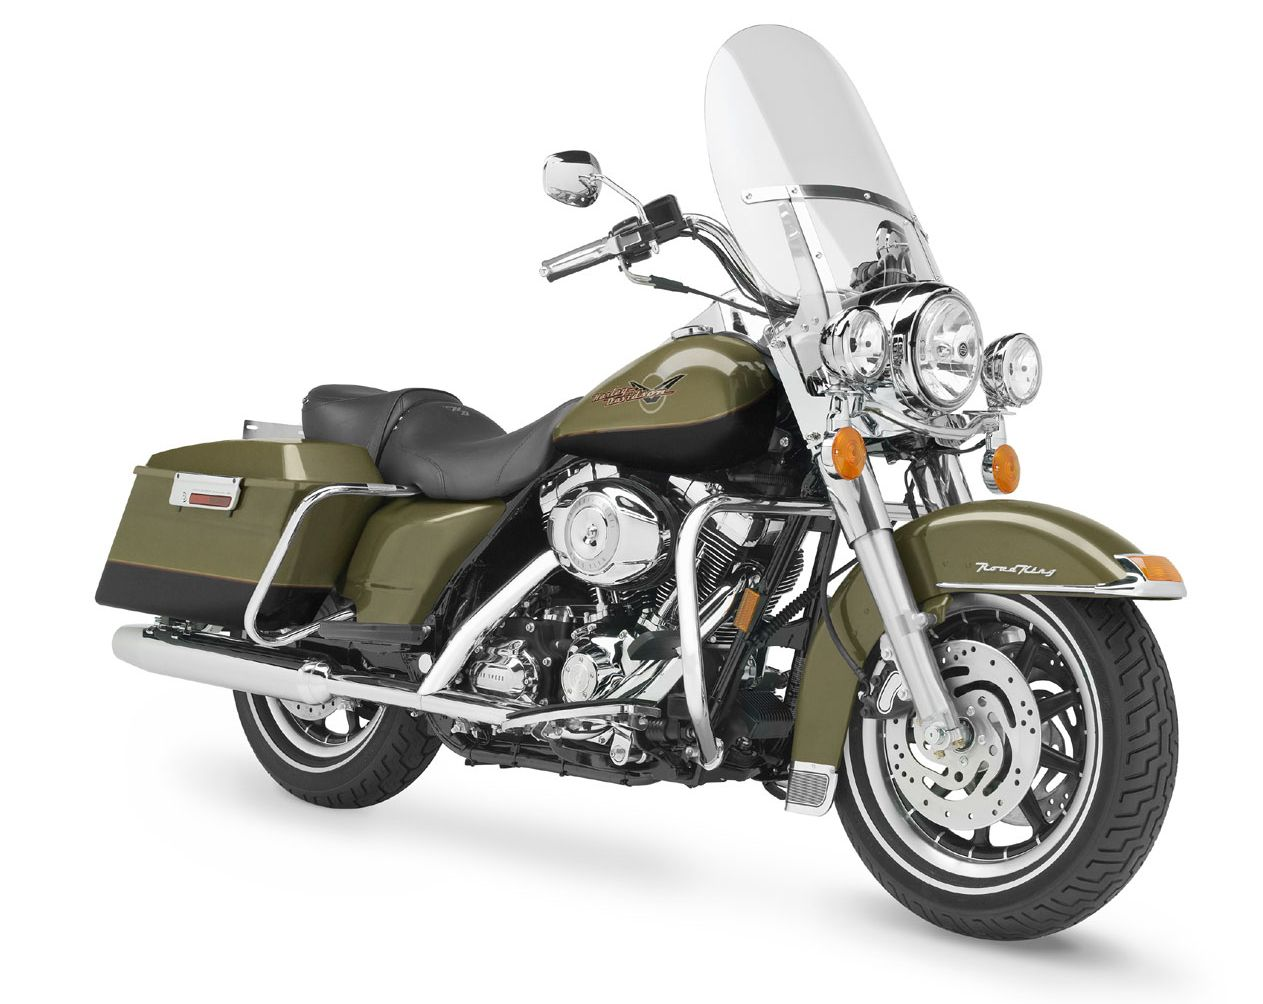 Harley Davidson Road King 1584 Flhr Bike 2007 2010 Workshop Service Repair Manual Pdf Download In 2020 Repair Manuals Harley Davidson Harley